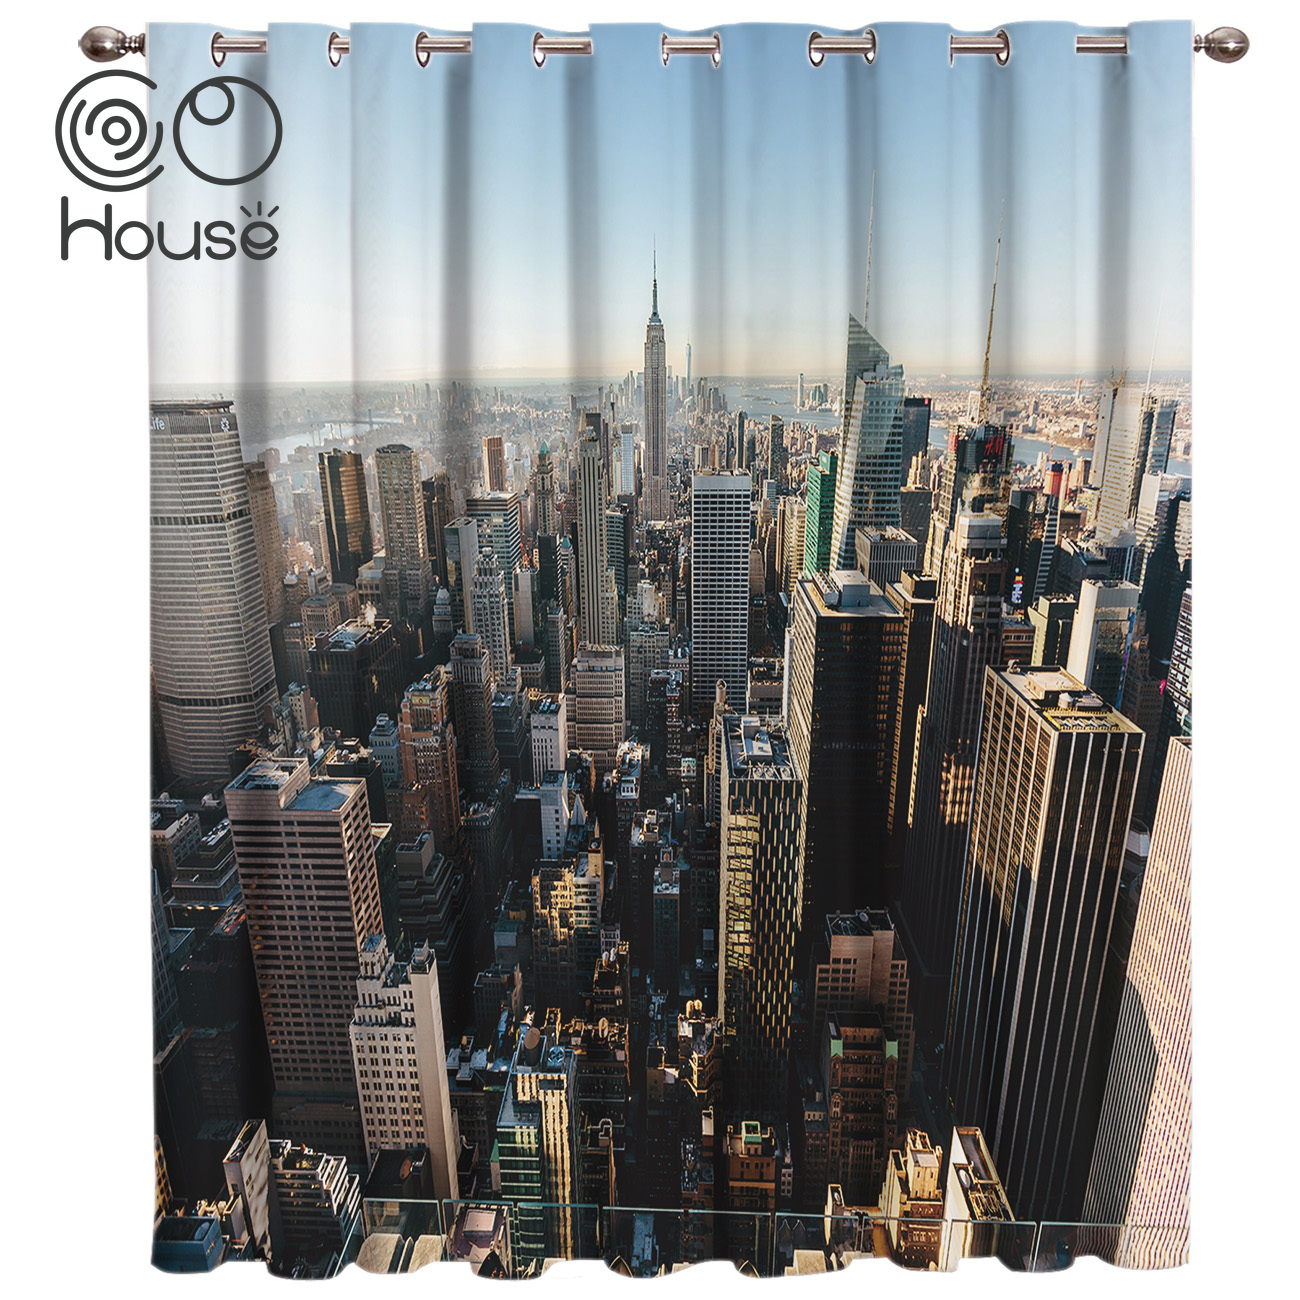 COCOHouse City New York Landscape Room Curtains Large Window Window Curtains Dark Window Blinds Living Room Kitchen Indoor Print